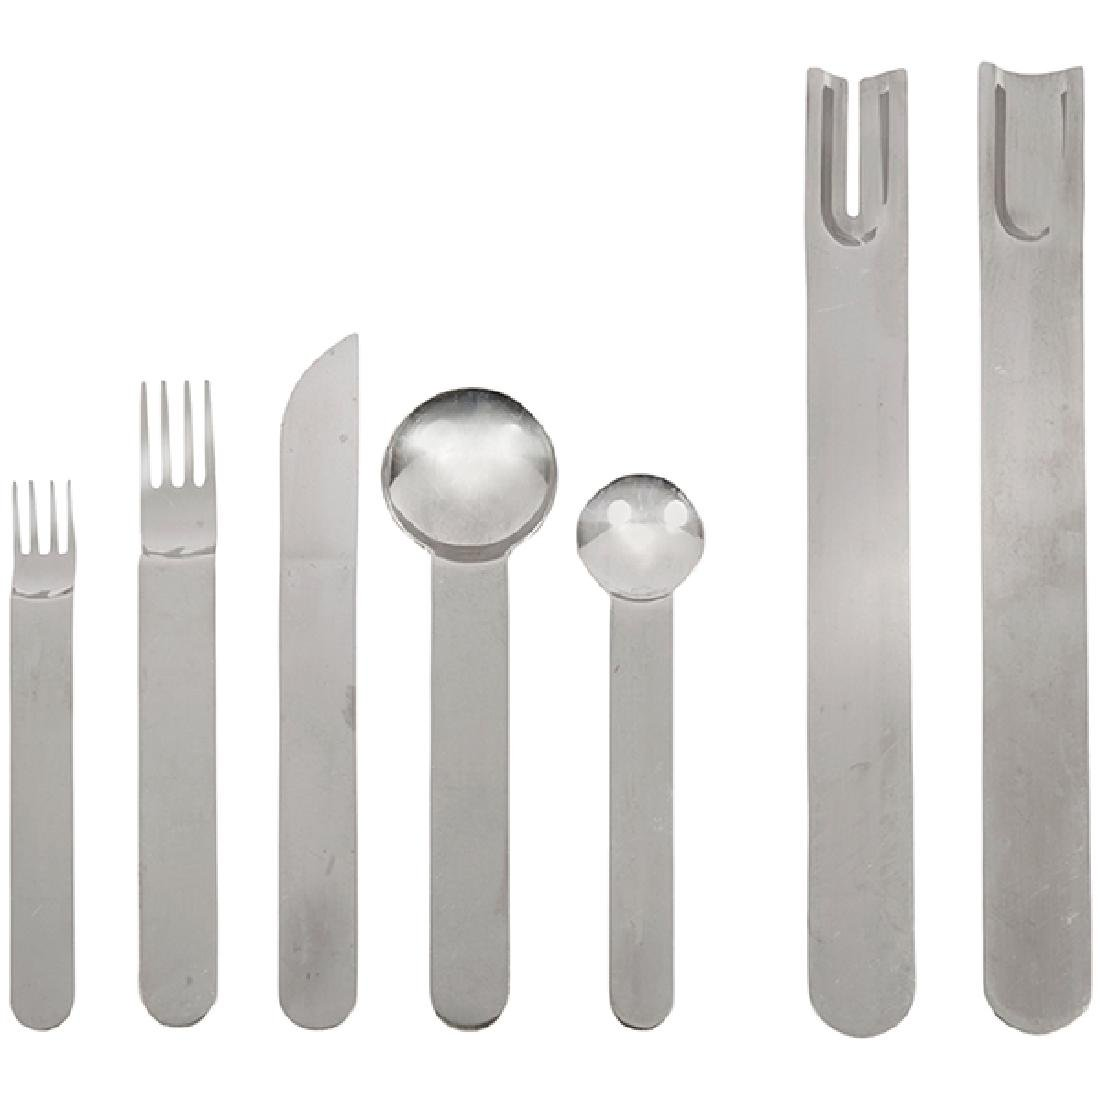 Sergio Asti for ICM Lauffer Boca flatware, 62 Pieces